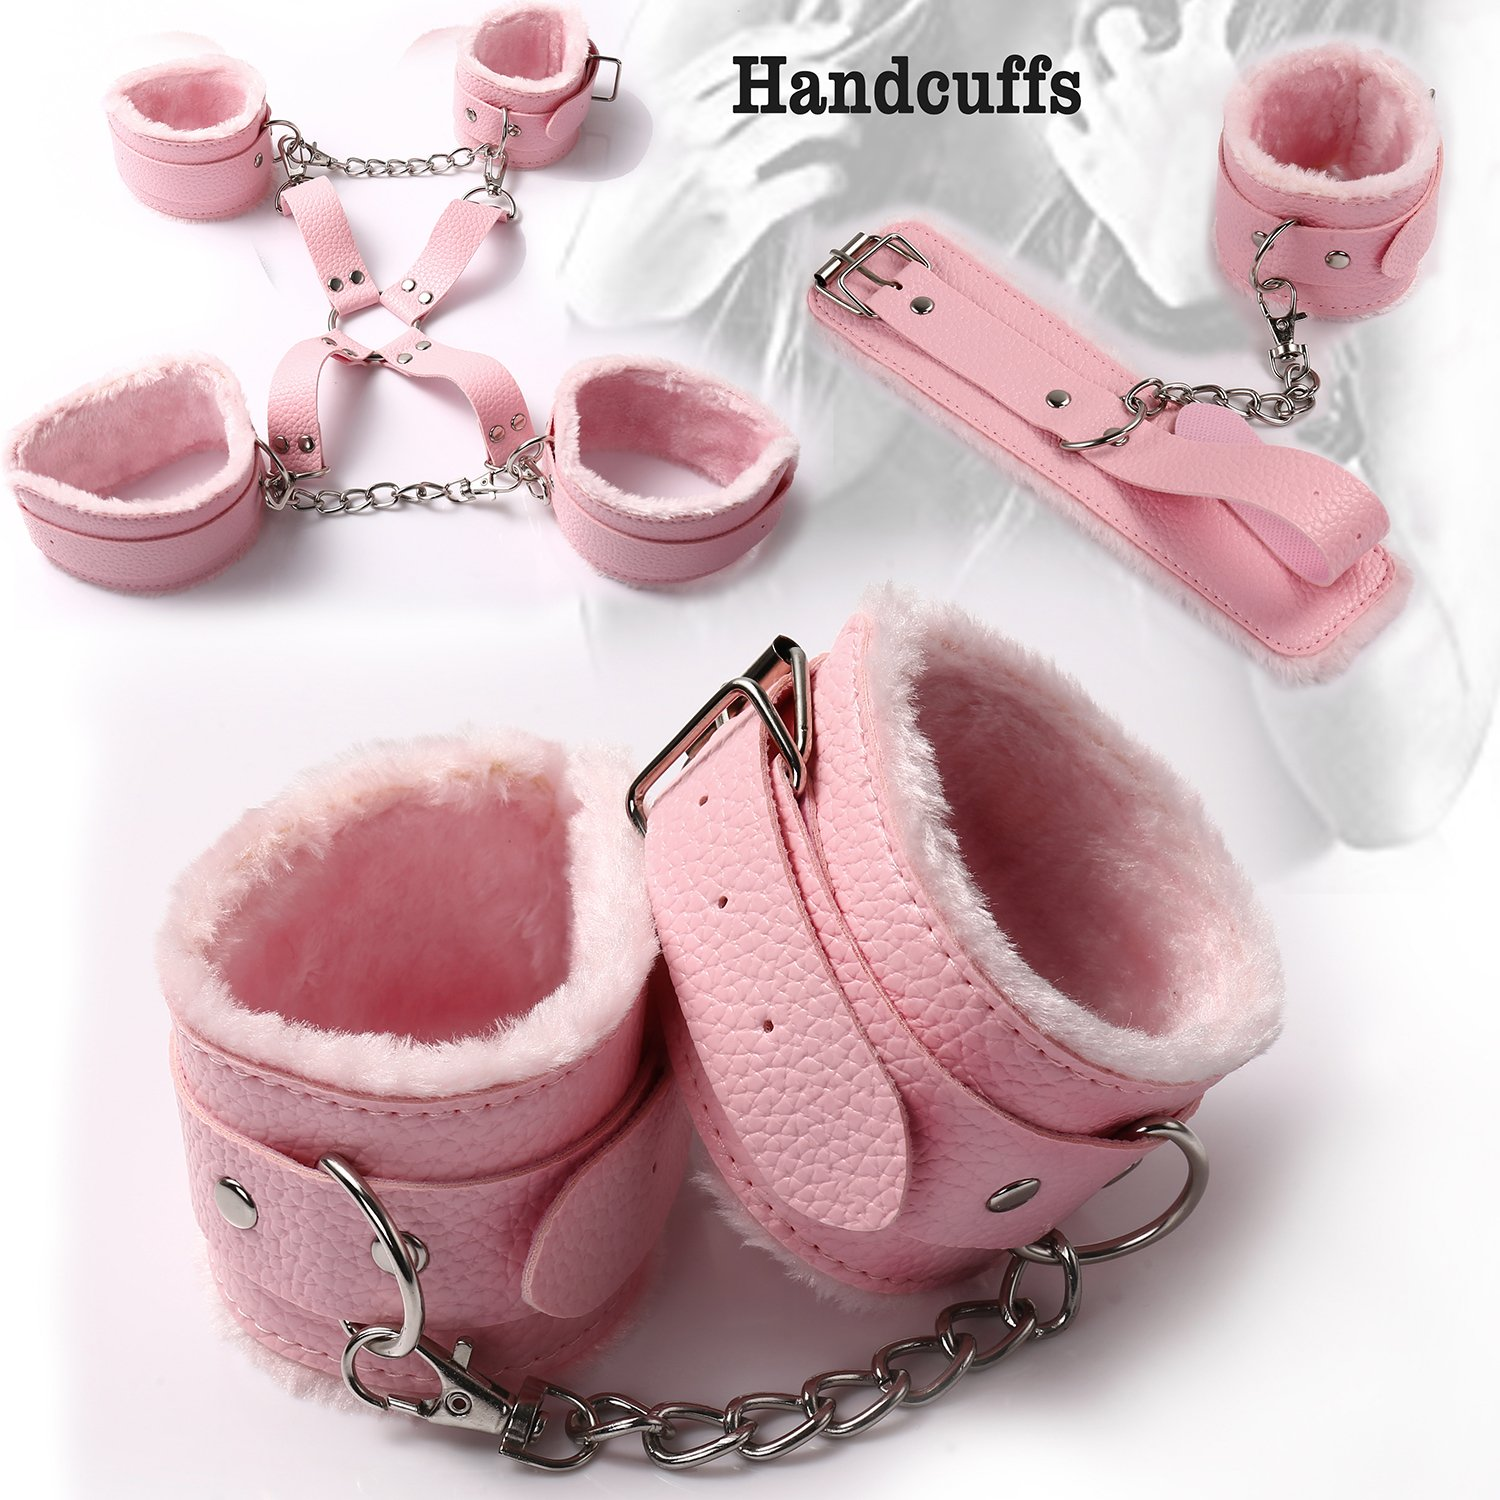 Premium Bondage Restraint, Bed Sex SM Bondage System Leather Set Romance Blindfold whips handcuffs Toys Adults For Men &Women Couple, 10 Pieces (pink) by KFXD (Image #6)